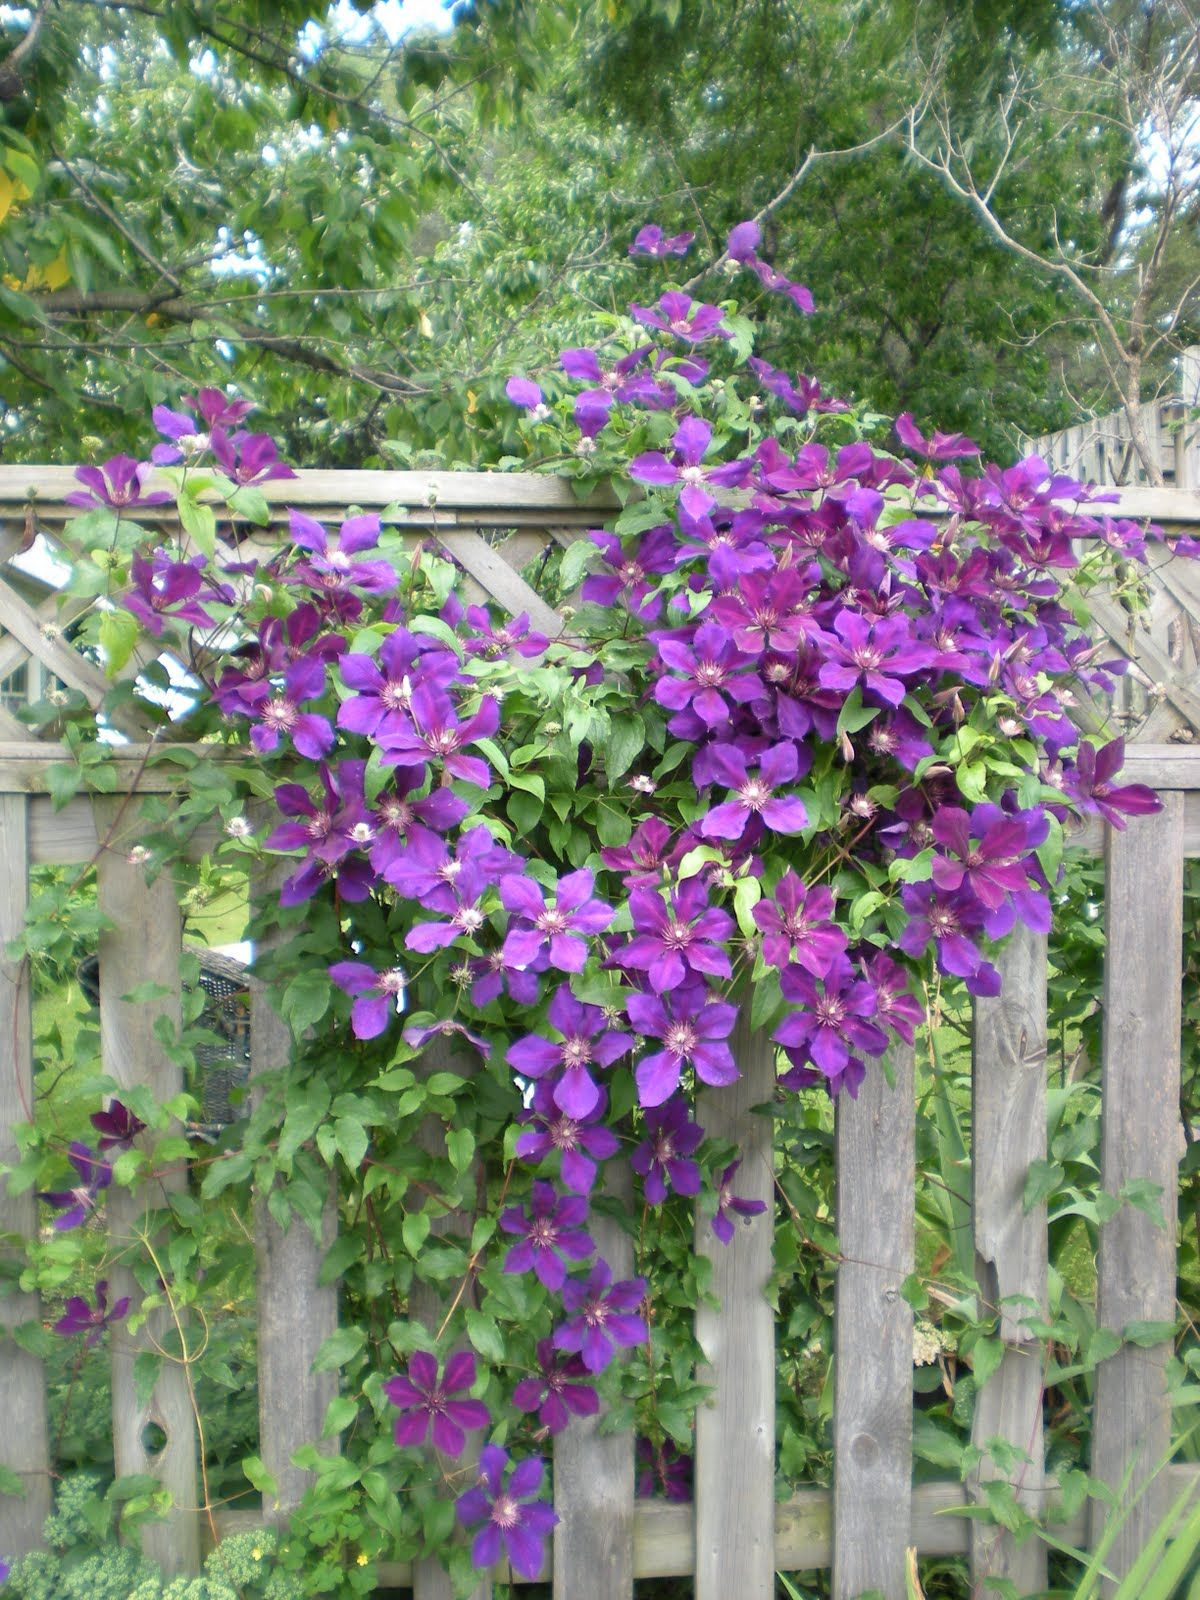 Clematis Pflanzen Video Clematis Put Up Chicken Wire Along Privacy Fencing For